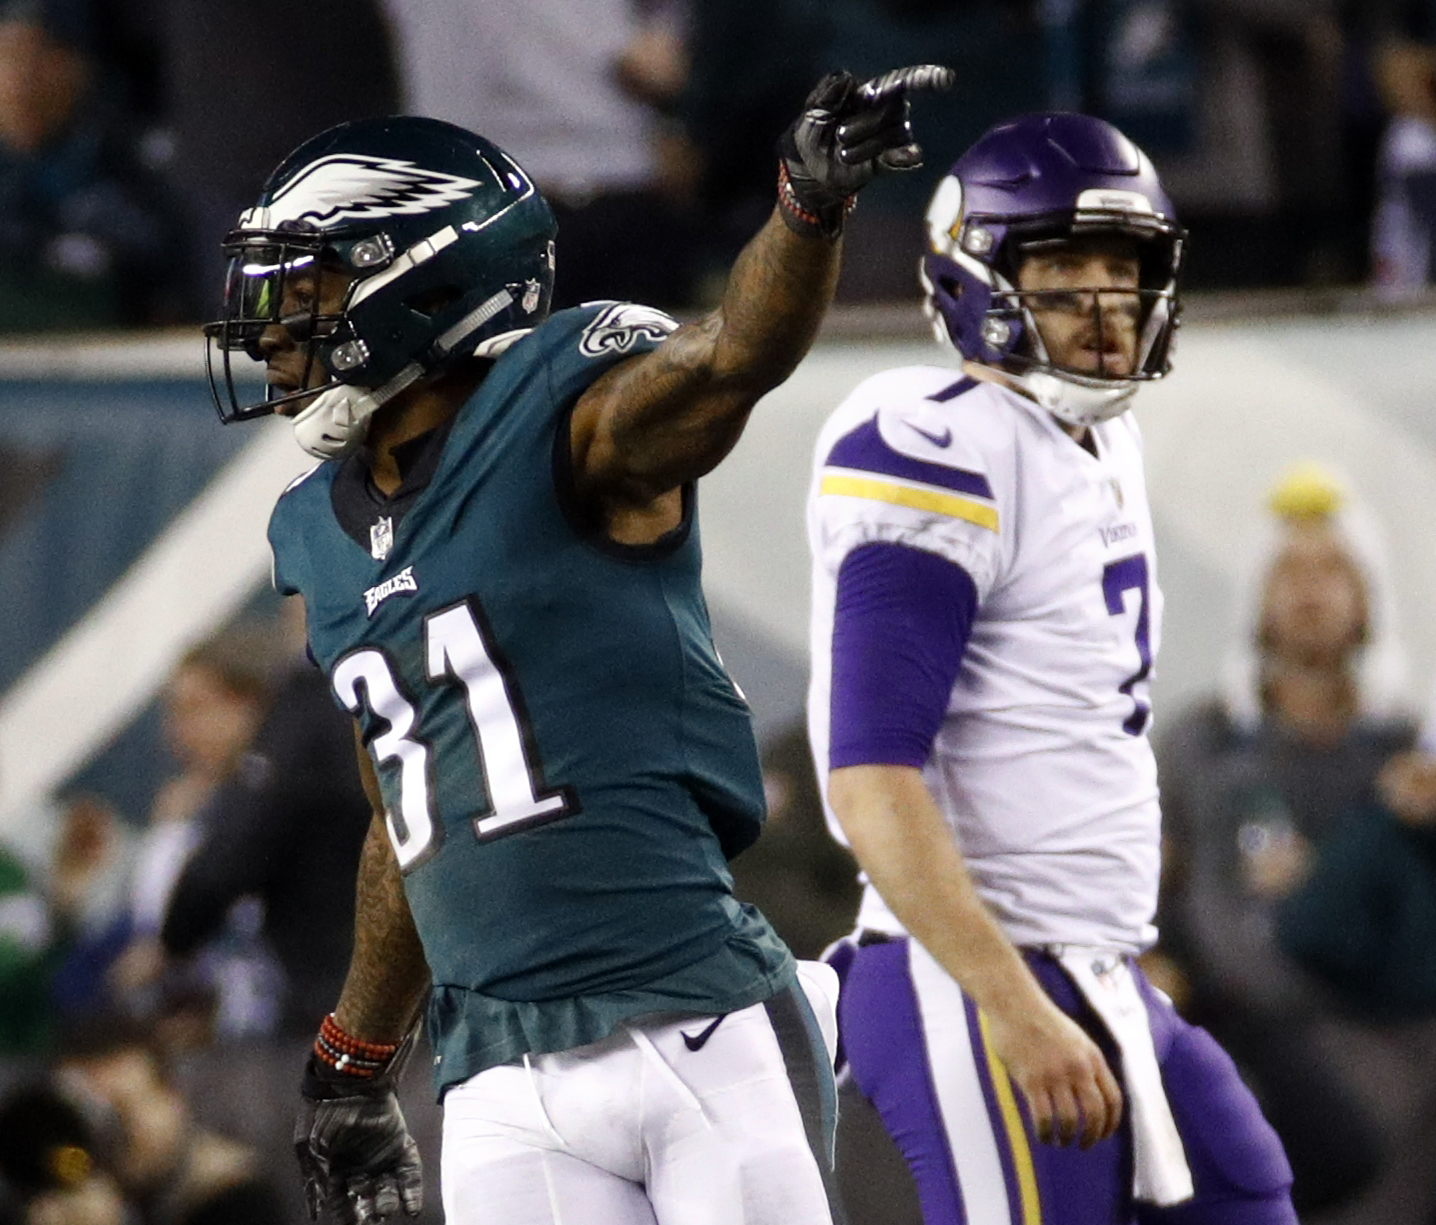 "<div class=""meta image-caption""><div class=""origin-logo origin-image ap""><span>AP</span></div><span class=""caption-text"">Philadelphia Eagles' Jalen Mills celebrates a fumble recovery in front of Minnesota Vikings' Case Keenum during the first half. (AP Photo/Patrick Semansky)</span></div>"